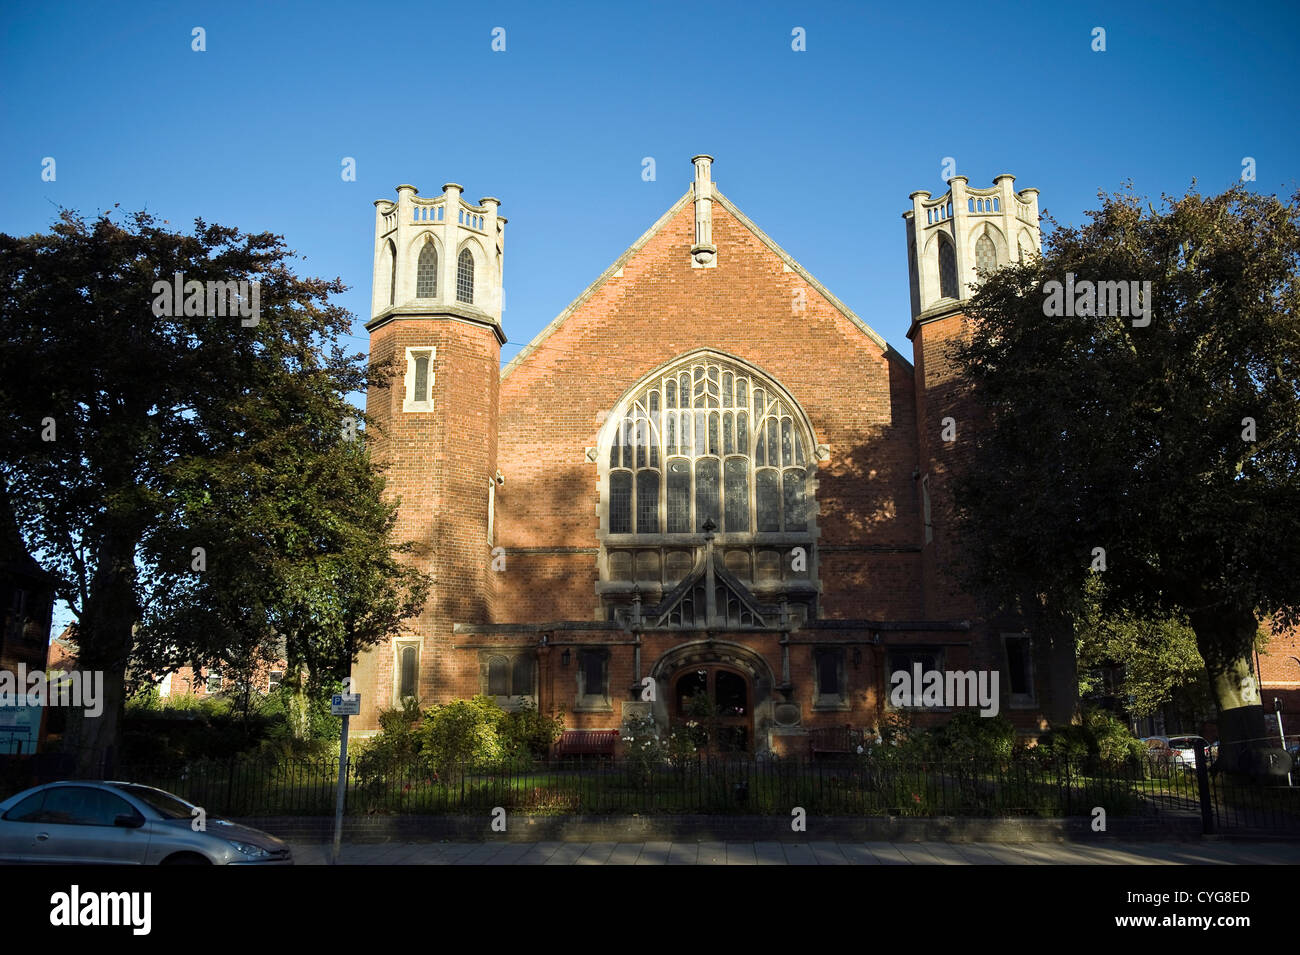 The London Road United Reformed Church in Kettering, Northamptonshire, UK - Stock Image